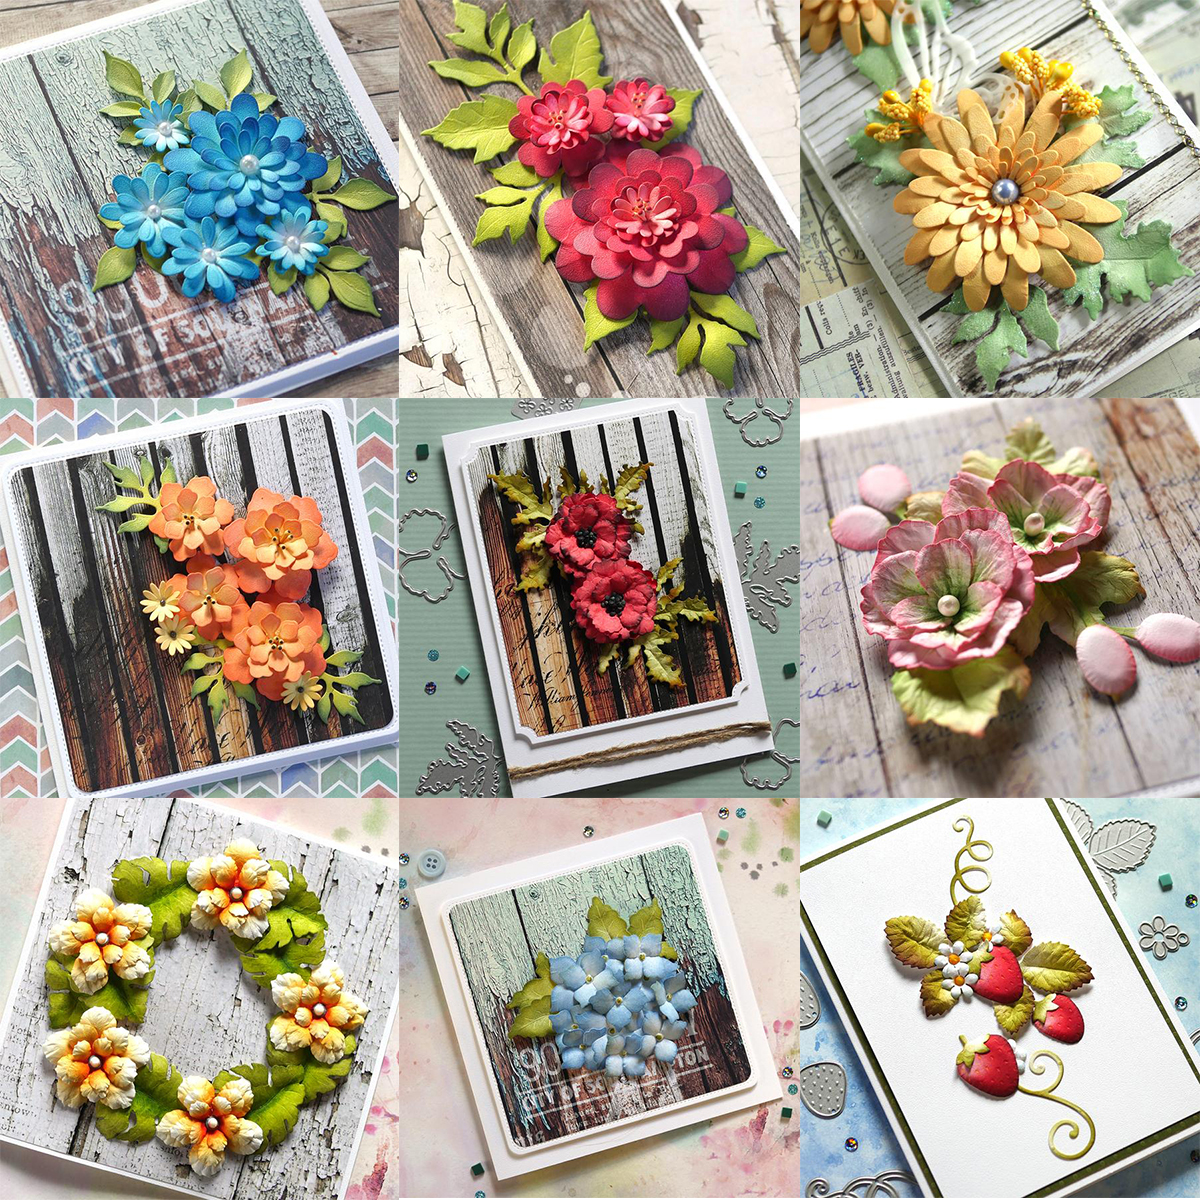 Flowers leaf set paper cut metal craft dies card making stencils diy manual blossom scrapbooking new Embossing dies 2021